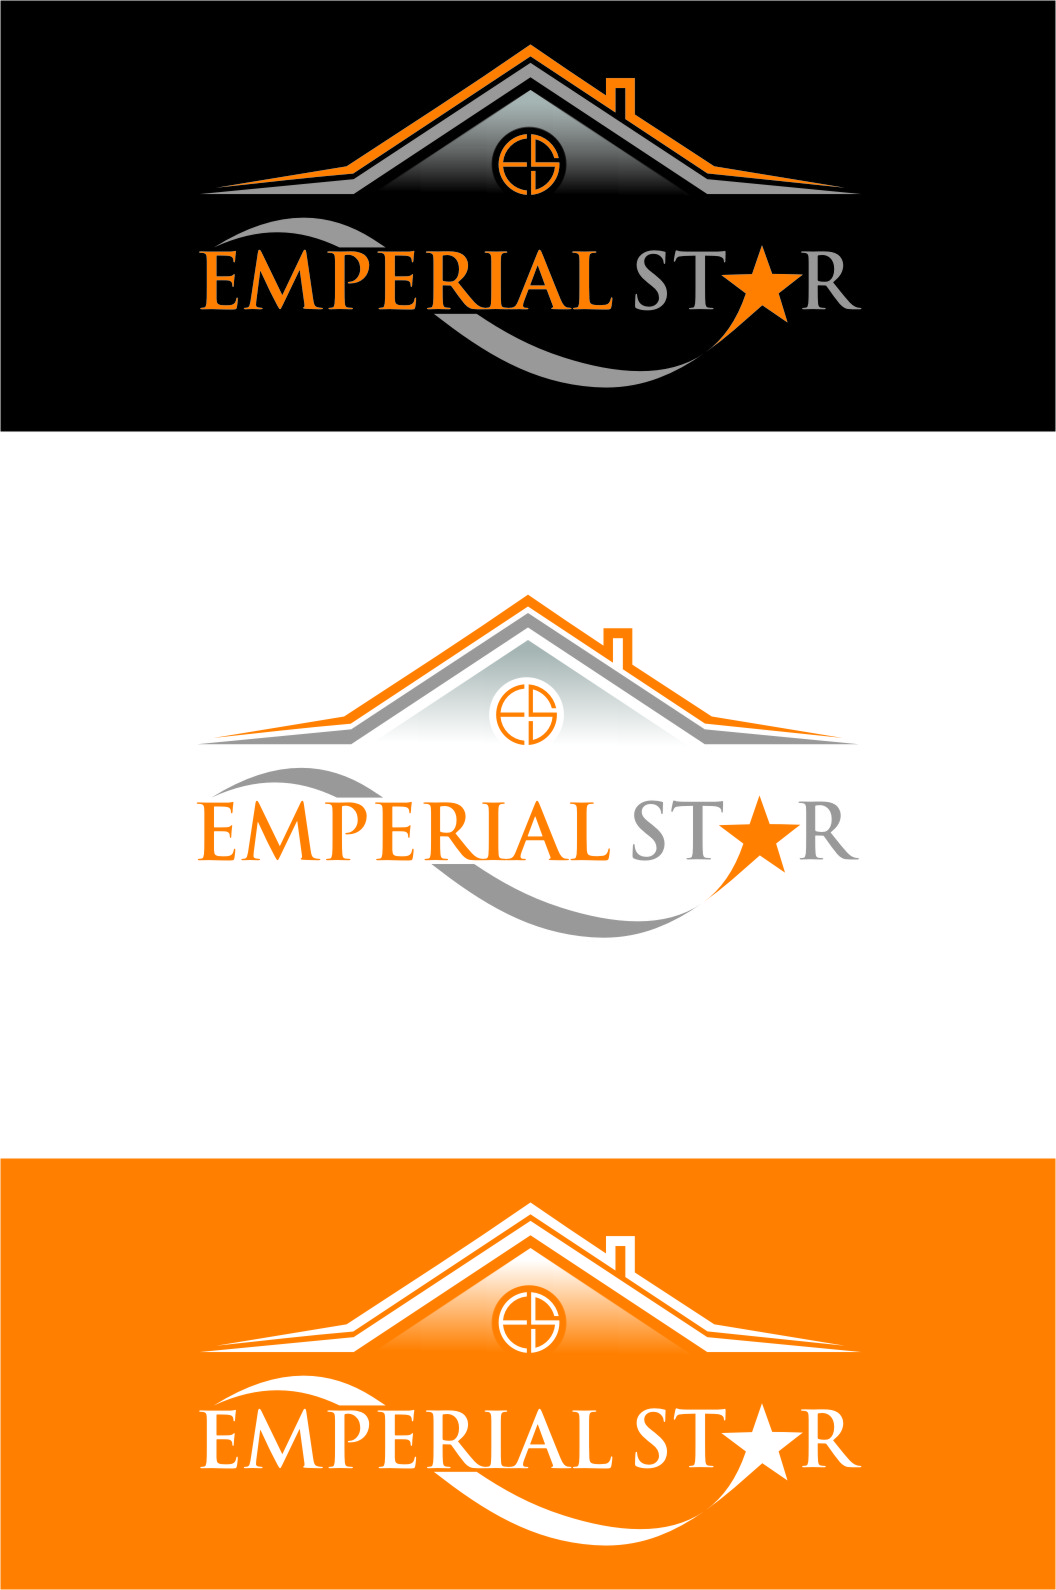 Logo Design by RoSyid Rono-Rene On Java - Entry No. 144 in the Logo Design Contest Emperial Star Logo Design.